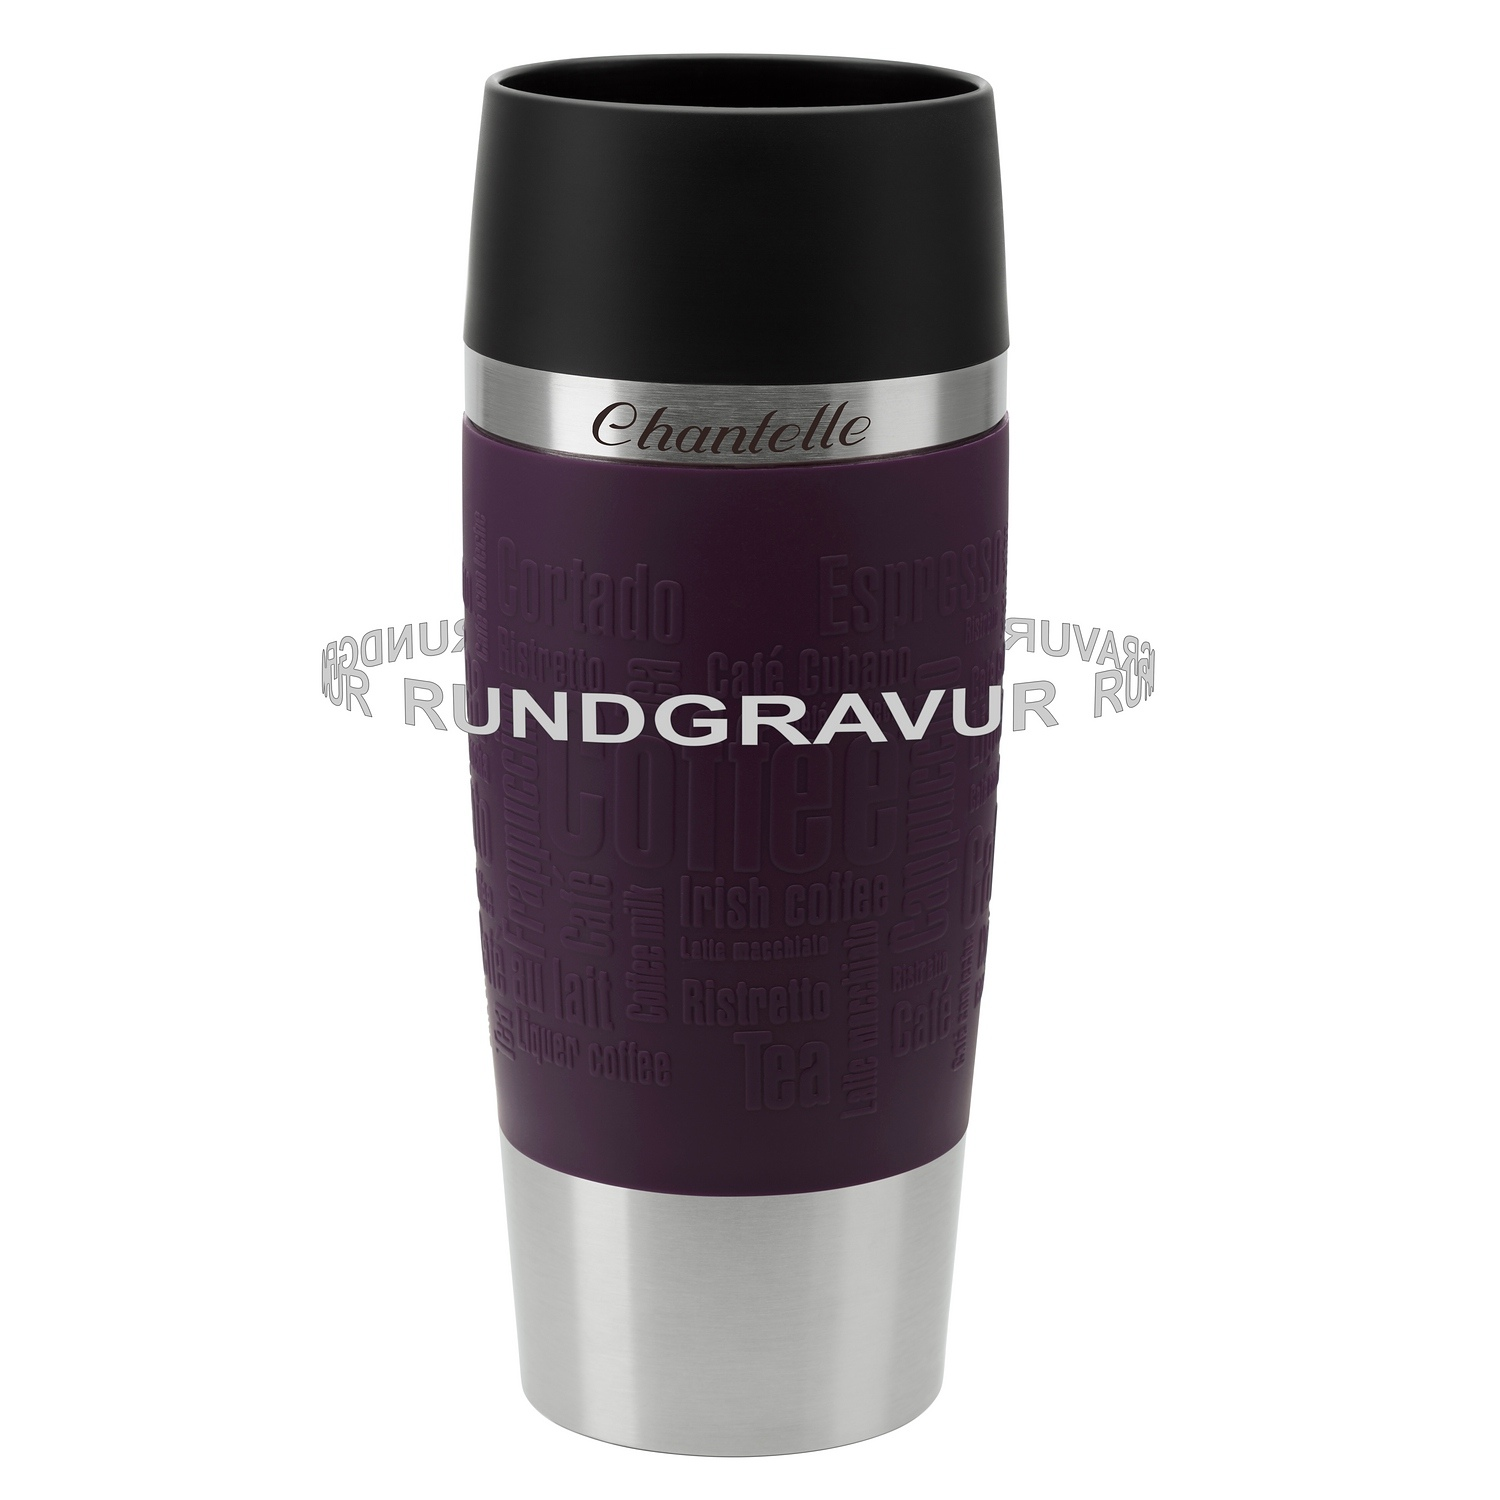 emsa thermobecher travel mug 0 36 l mit rund gravur. Black Bedroom Furniture Sets. Home Design Ideas